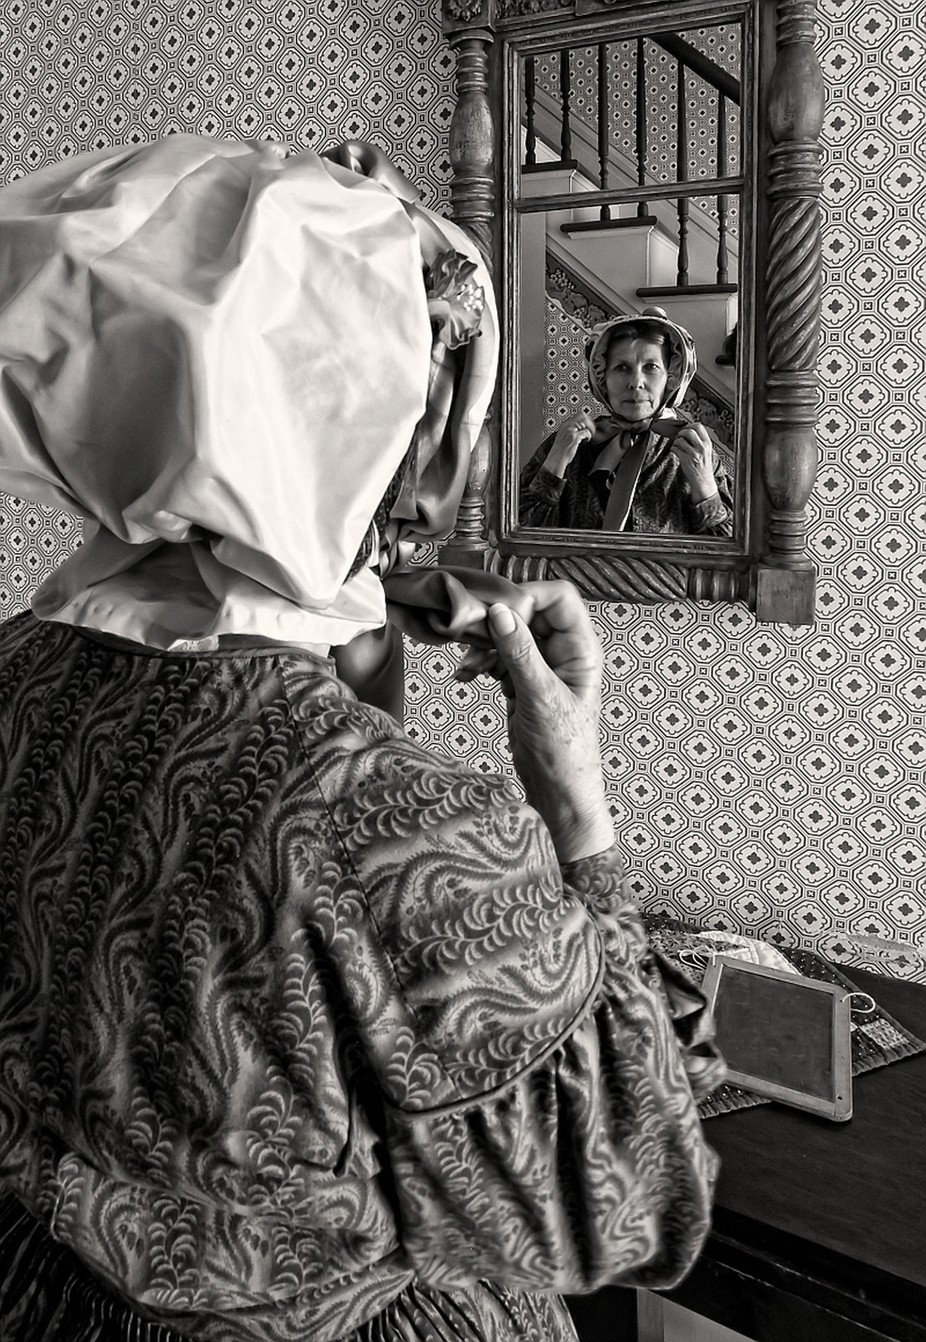 Heading Out by terryc - The Face in the Mirror Photo Contest